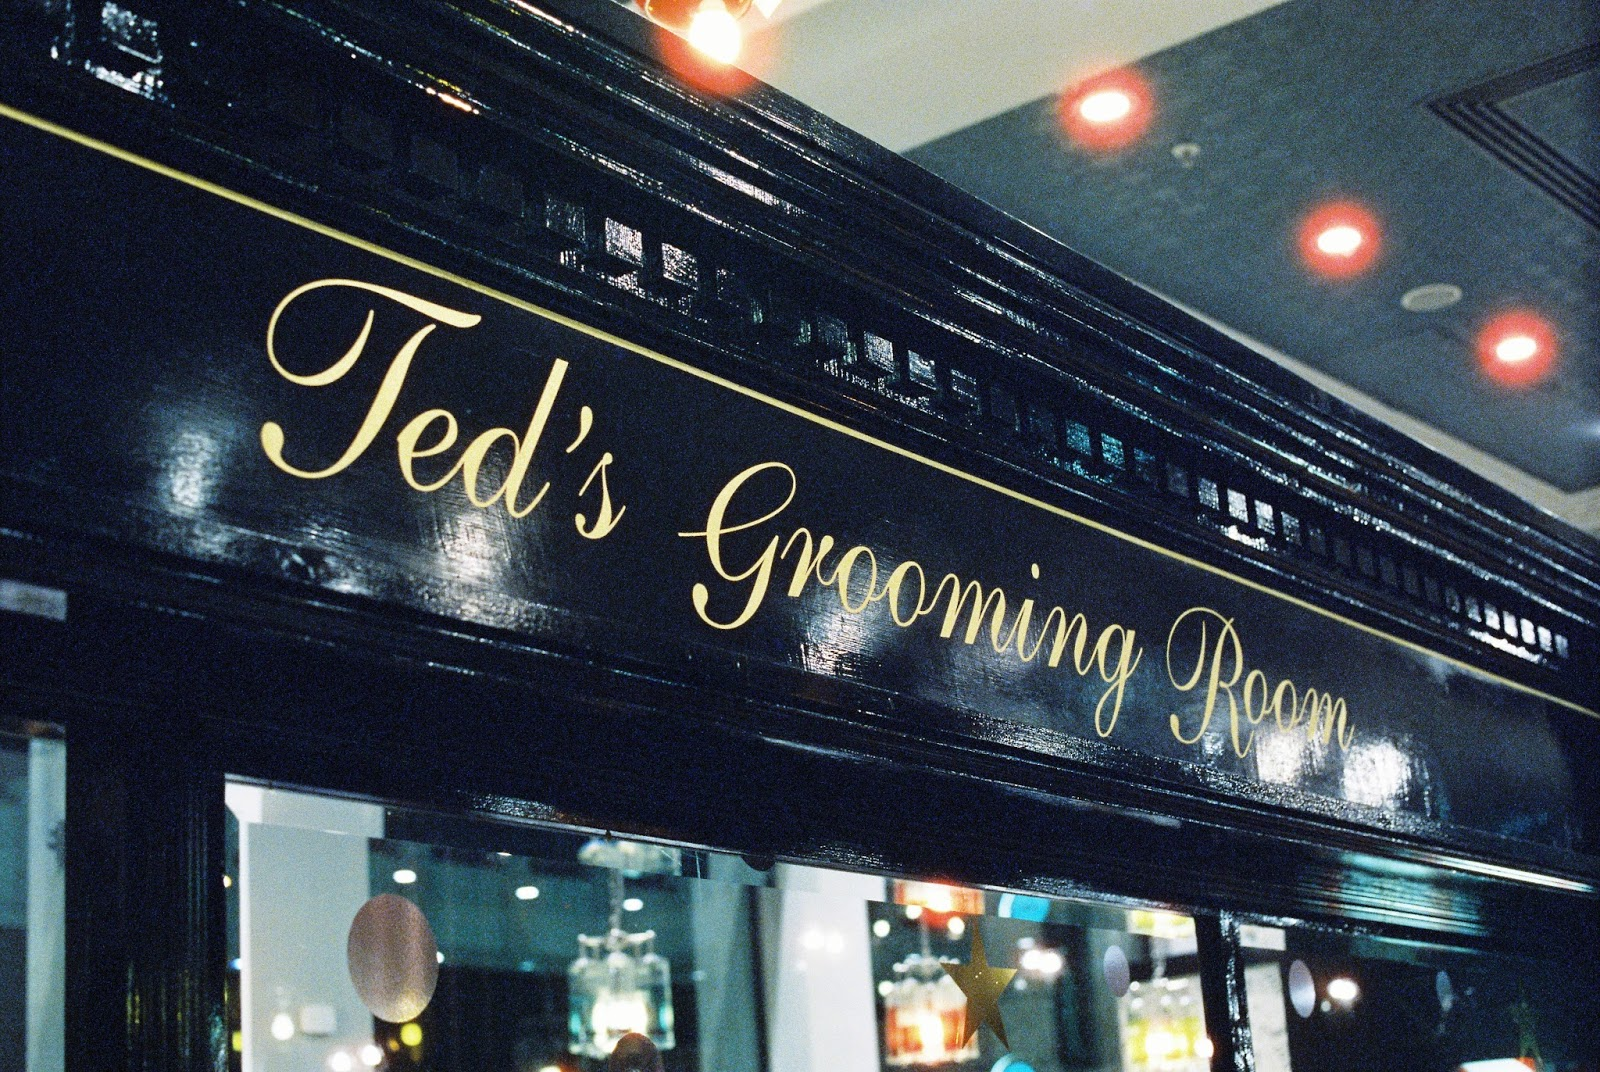 Ted's Grooming Room Cheapside